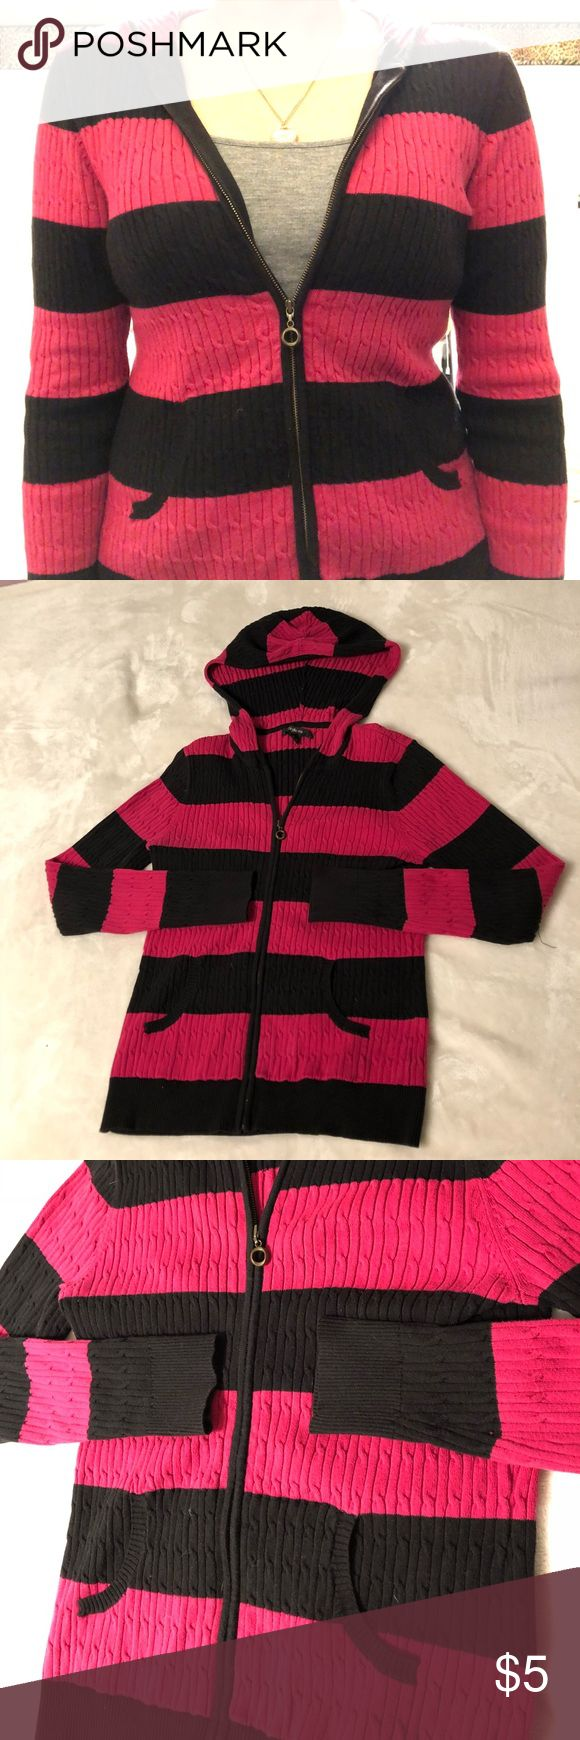 Pink Striped Zip up Hoodie Excellent used condition pink and black striped hooded jacket by Style Co. Size small but runs bigger and stretches. Fits like a Medium. Tag is slightly ripped but otherwise great condition! Style & Co Tops Sweatshirts & Hoodies